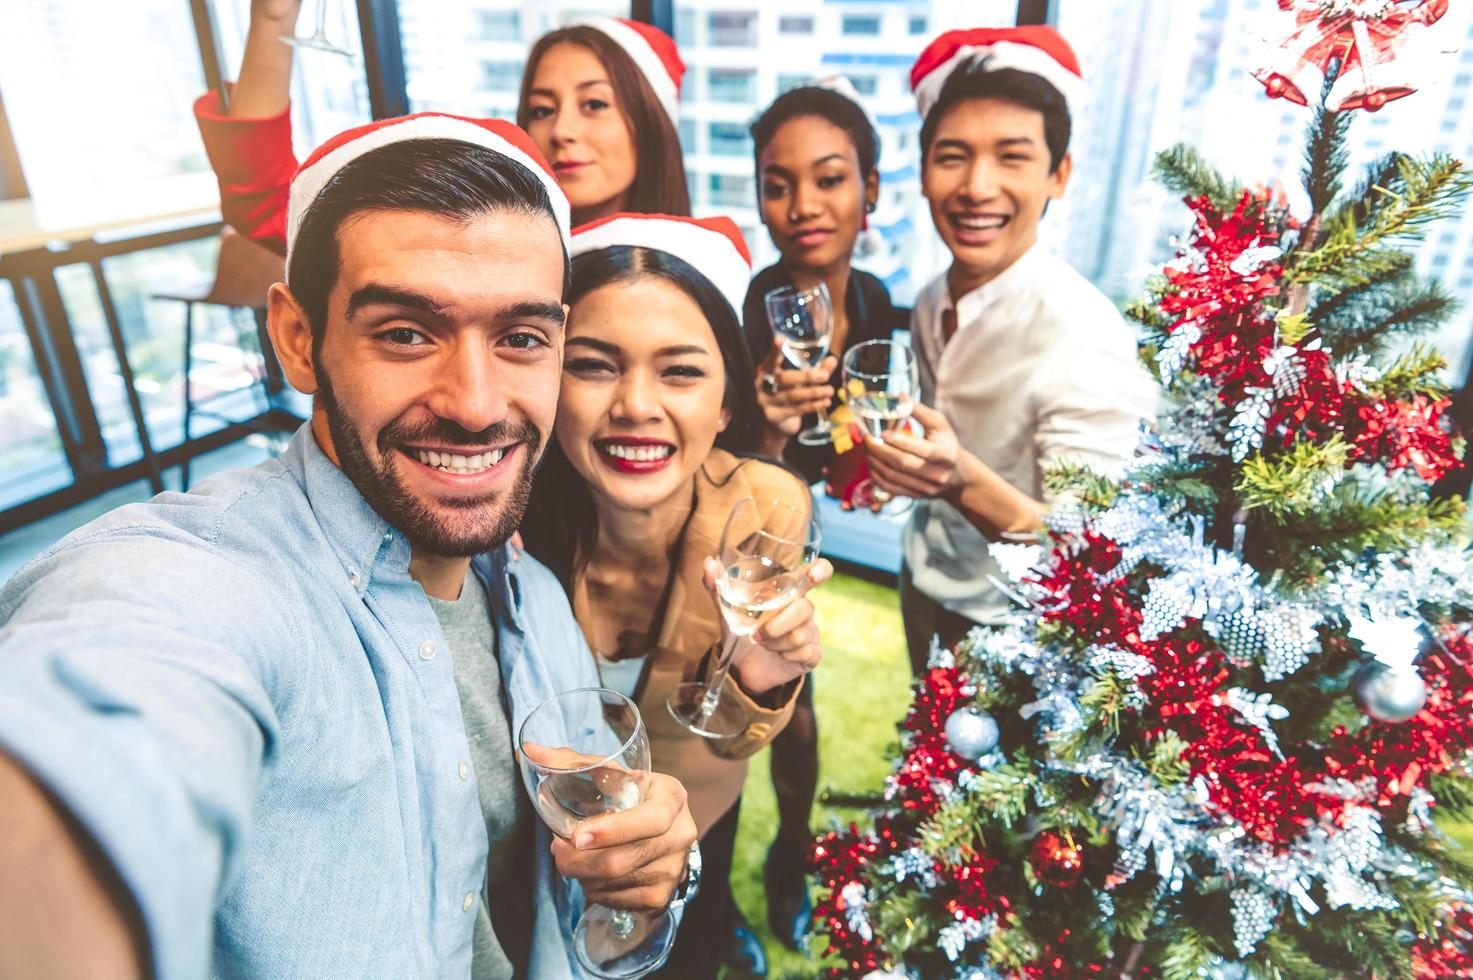 A multiethnic group of people at a holiday party photo